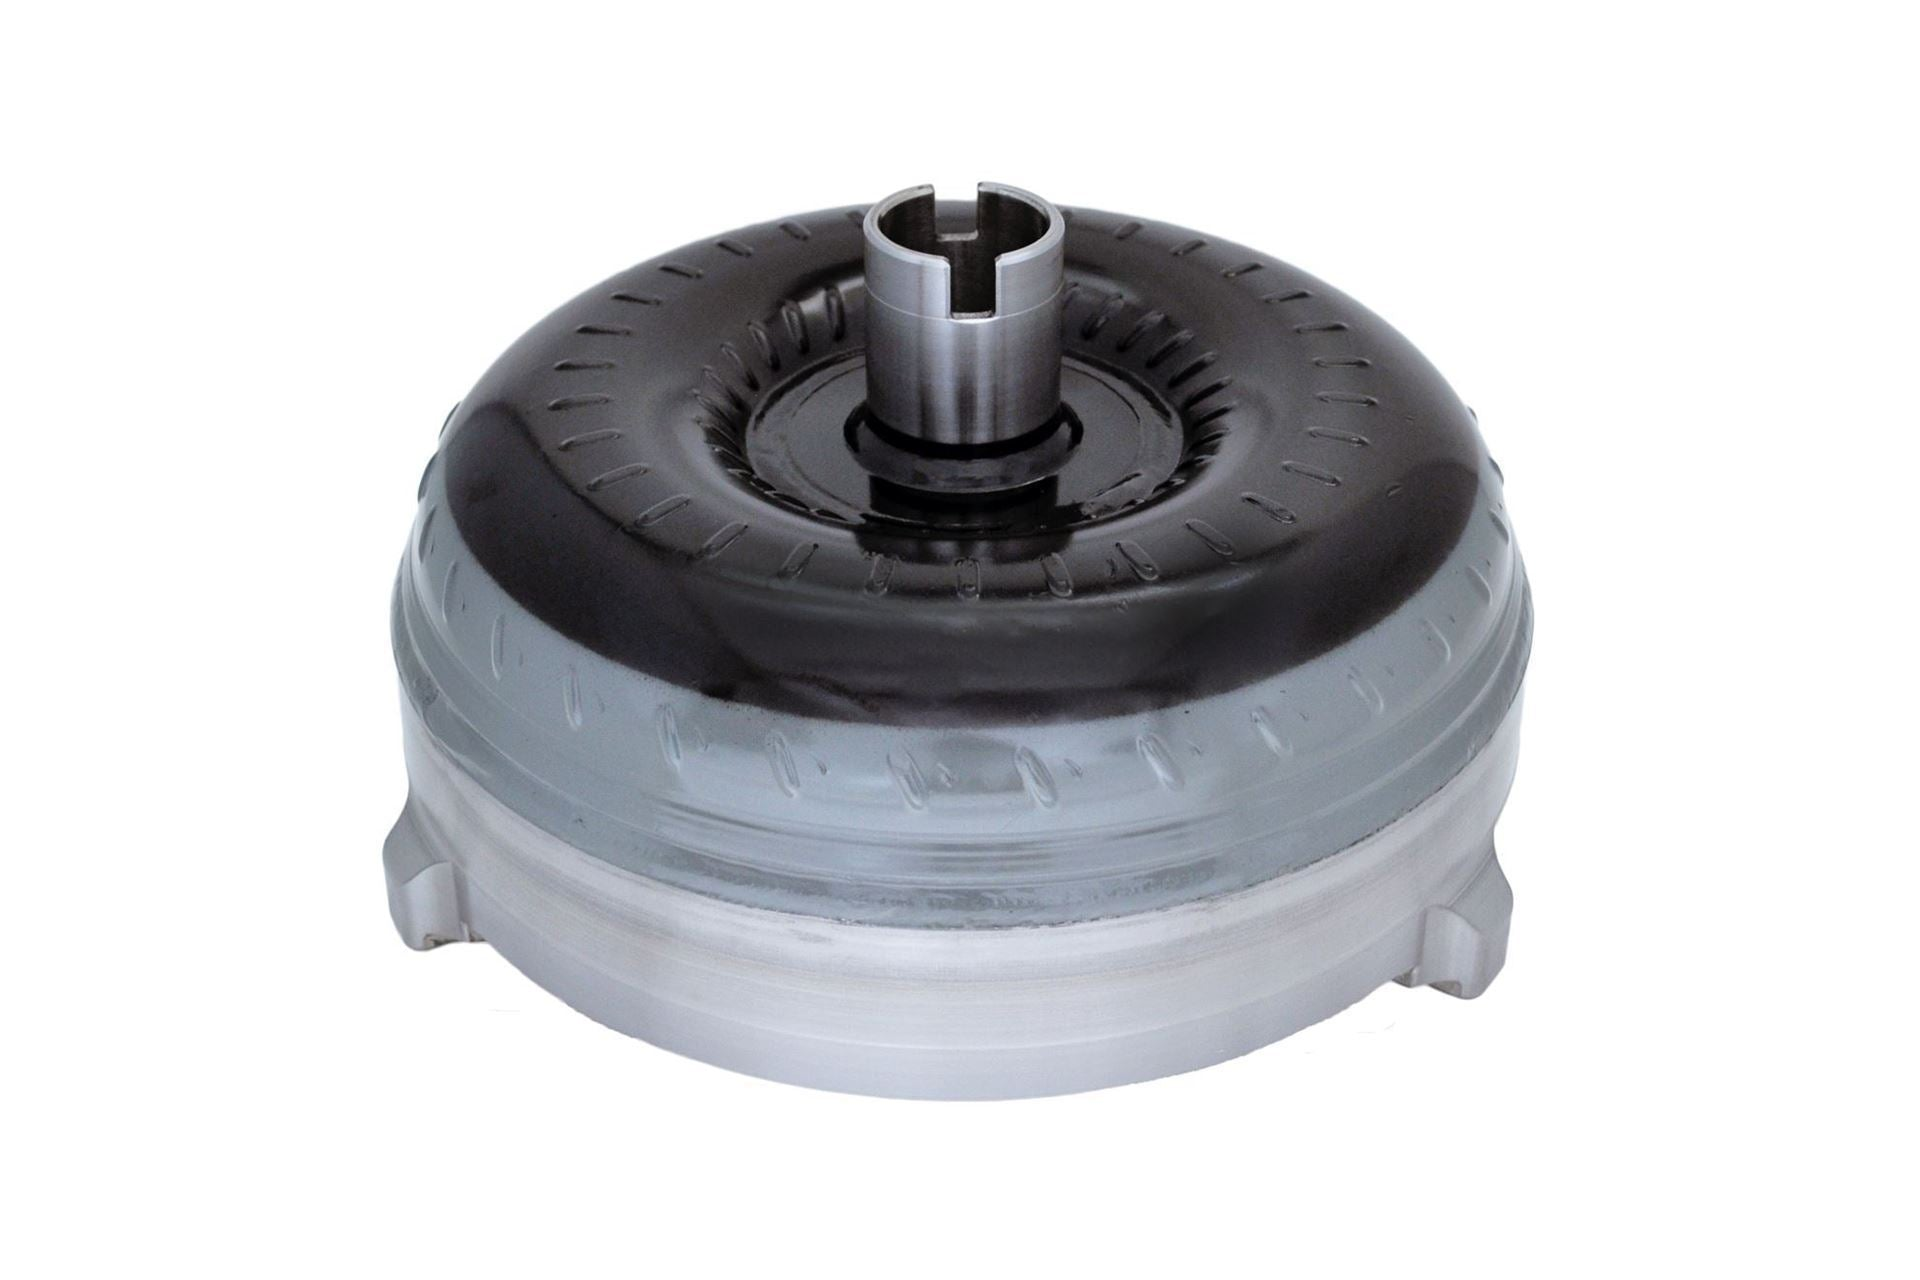 Circle D 258mm Billet Pro Series LS Torque Converter - 4L80e